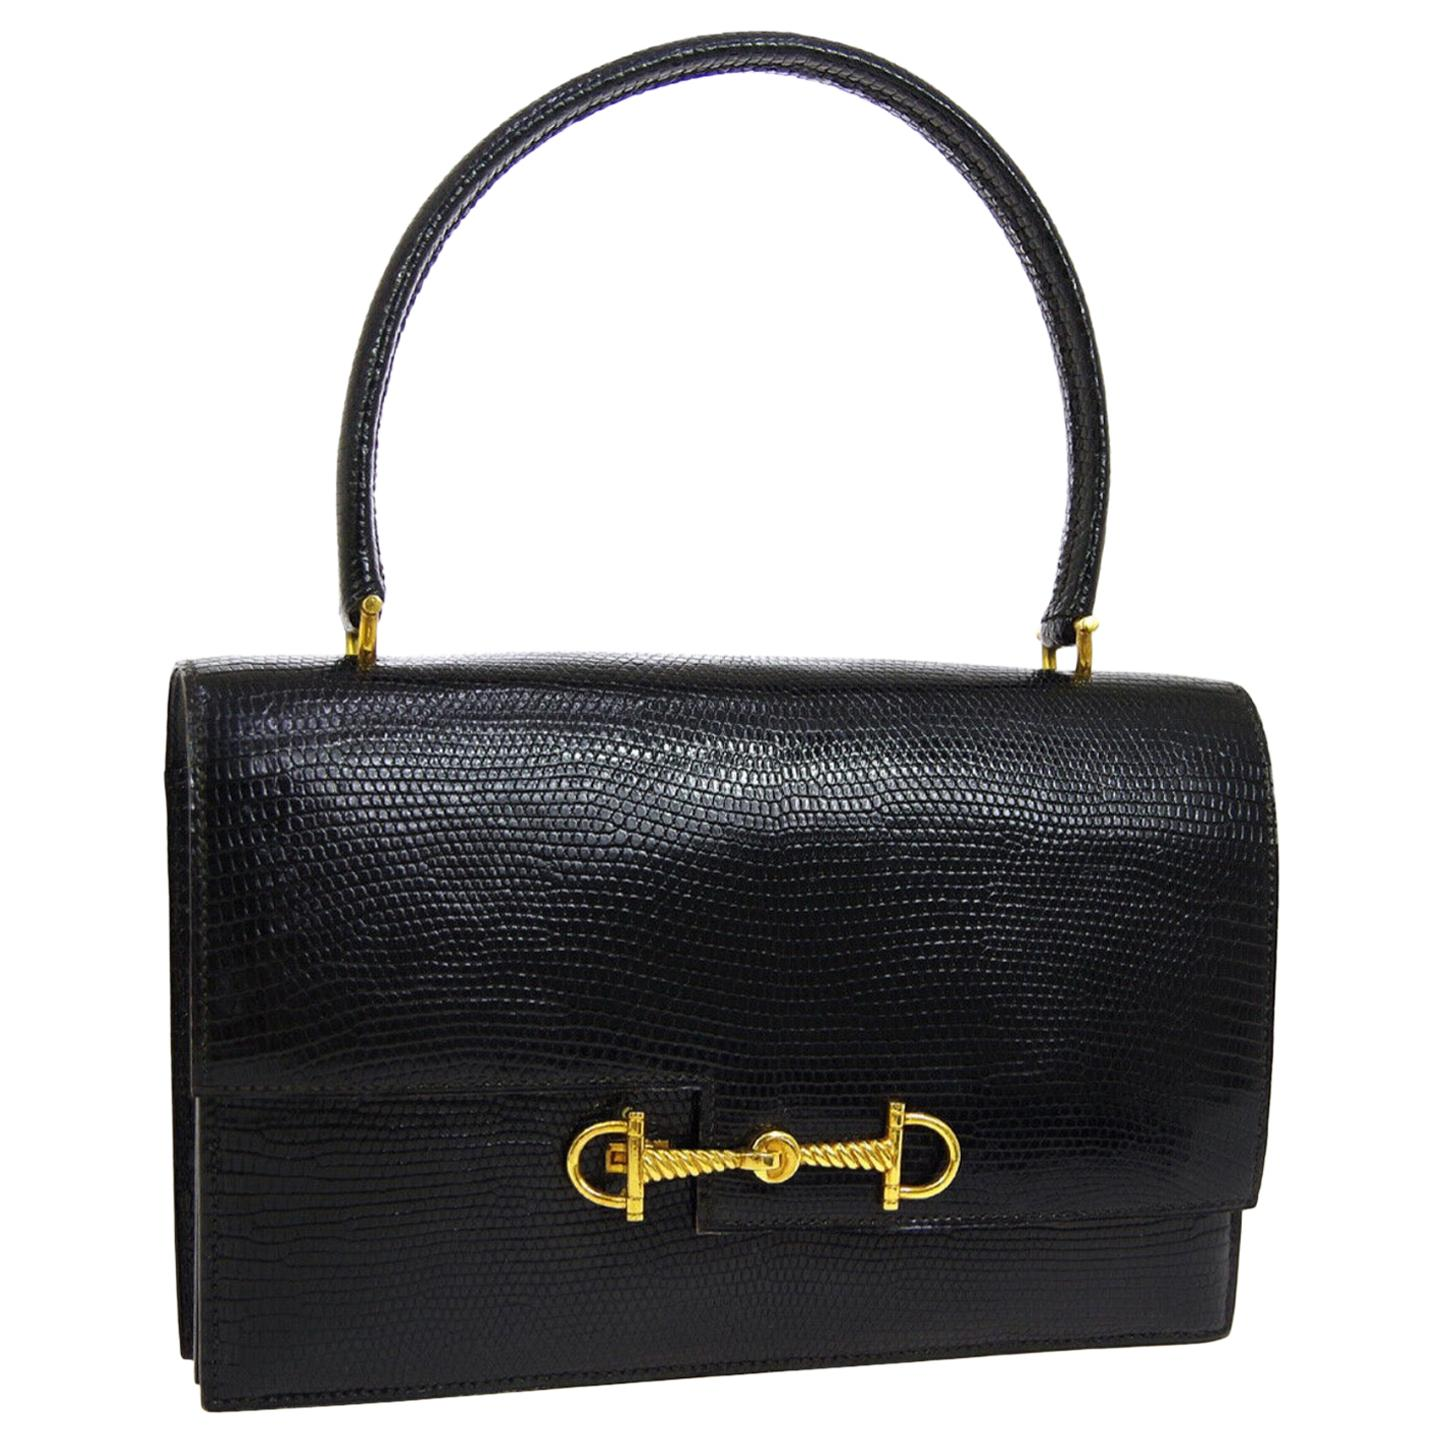 Hermes Black Exotic Lizard Gold Evening Kelly Style Top Handle Satchel Bag